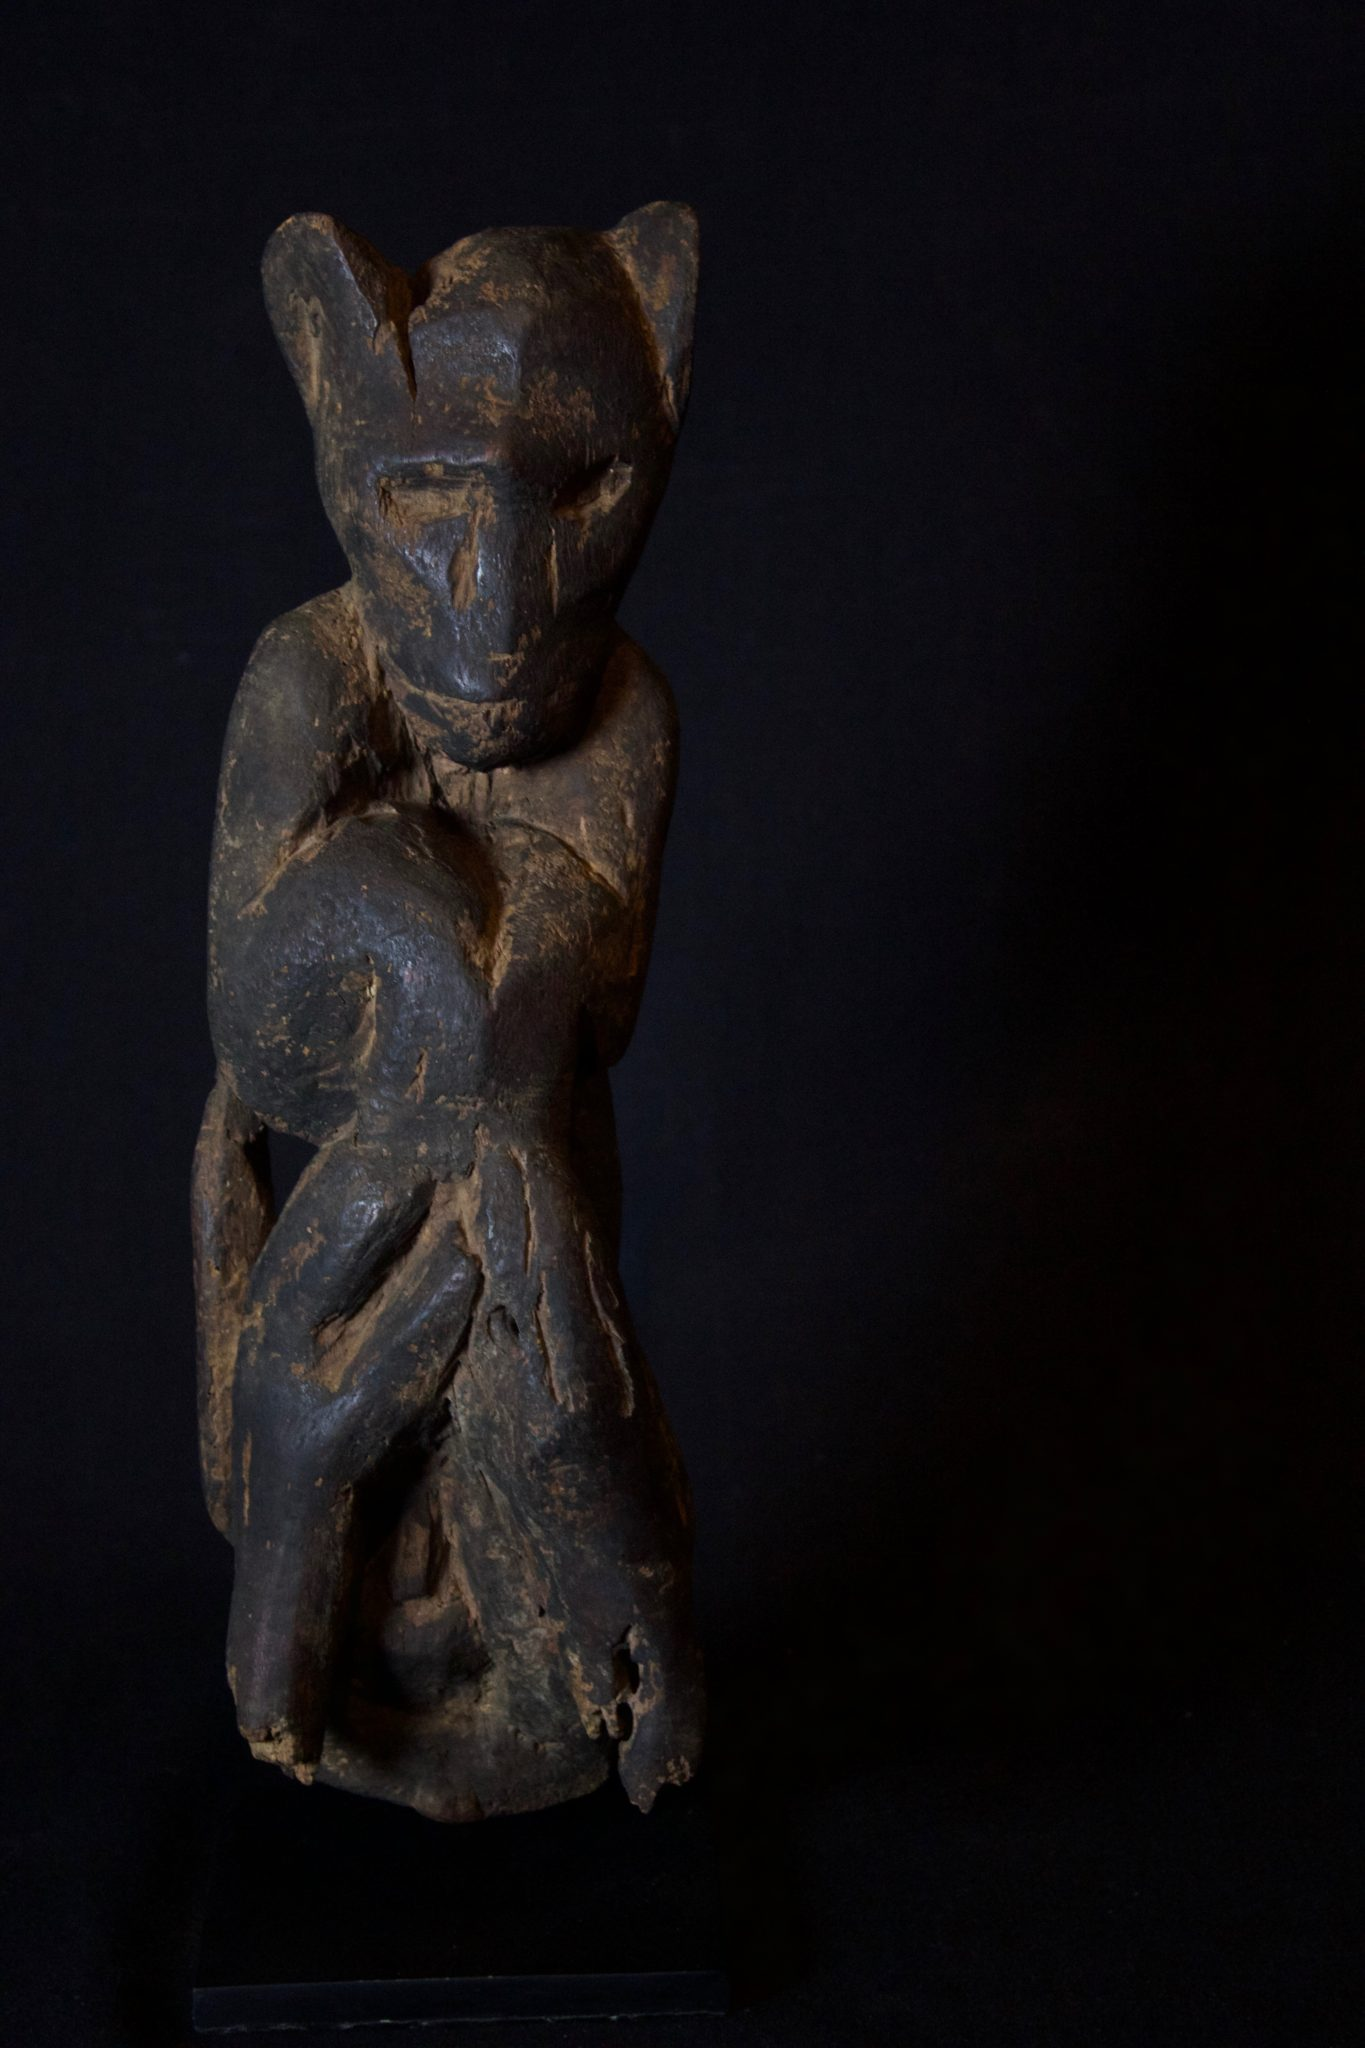 "Shaman Protection Figure, Kalimantan, Borneo, Indonesia, Modong Dayak tribe, Late 19th c, Wood darkened with soot. Shaman use these to protect themselves and villagers from evil creatures, 14"" x 4 ¼"" x 4"", $560"